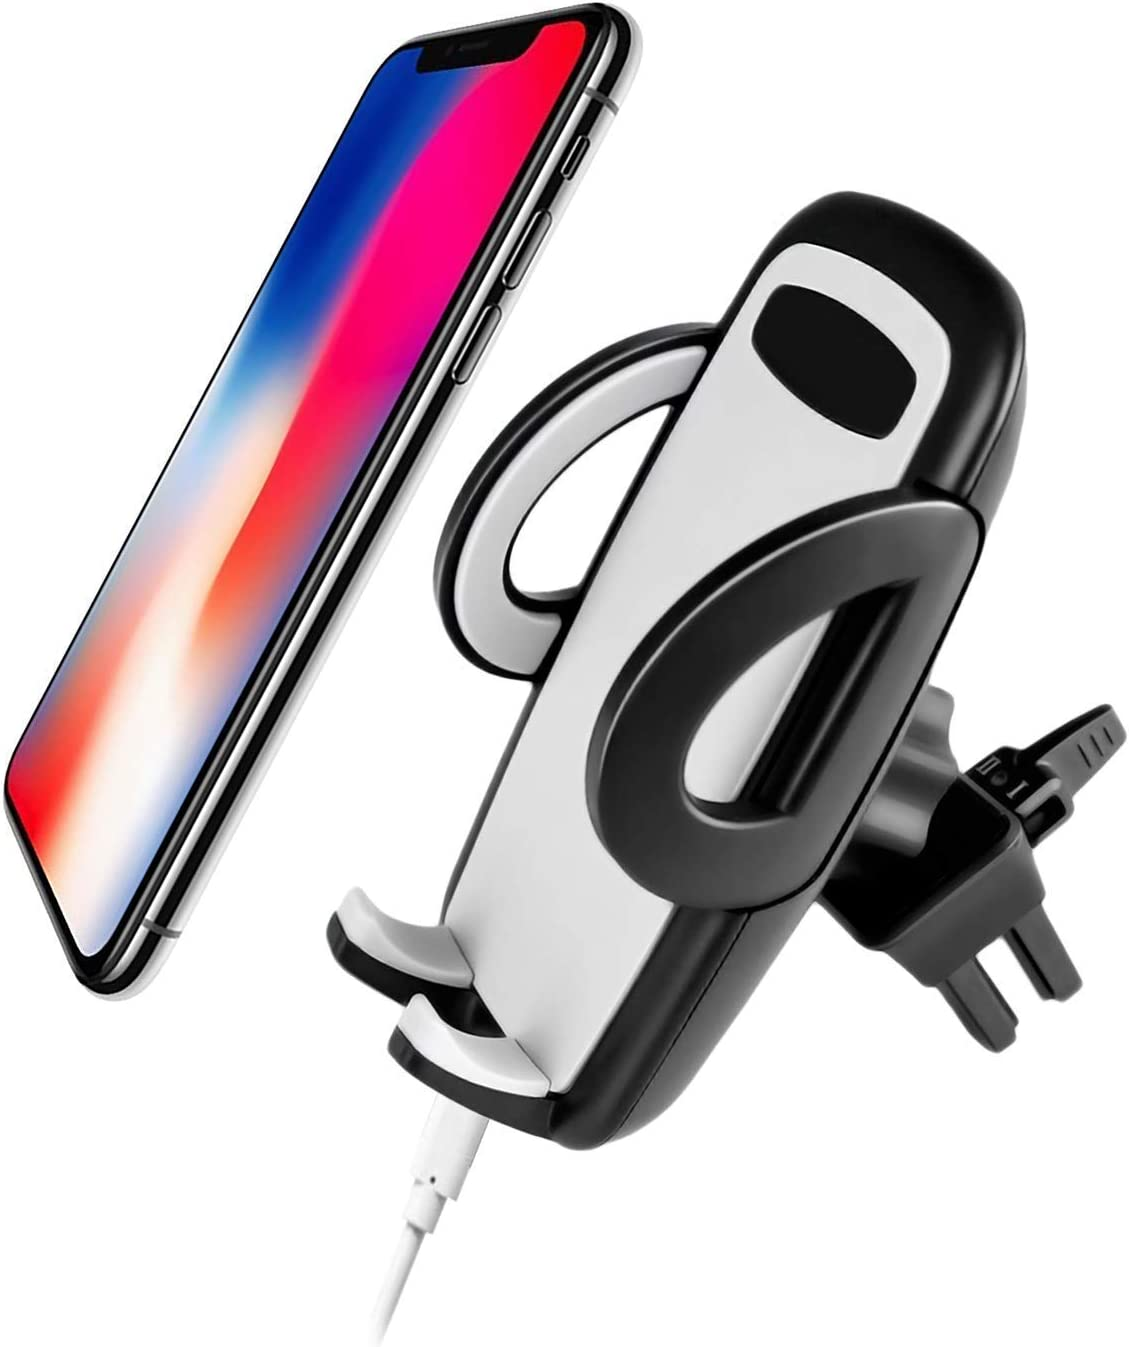 Android Easy One Touch Release Universal Air Vent Car Mount Cradle Clip Holder Smartphone iPhone /& Samsung Galaxy Vertical Horizontal Vent Clip Design w//Easy Phone Release